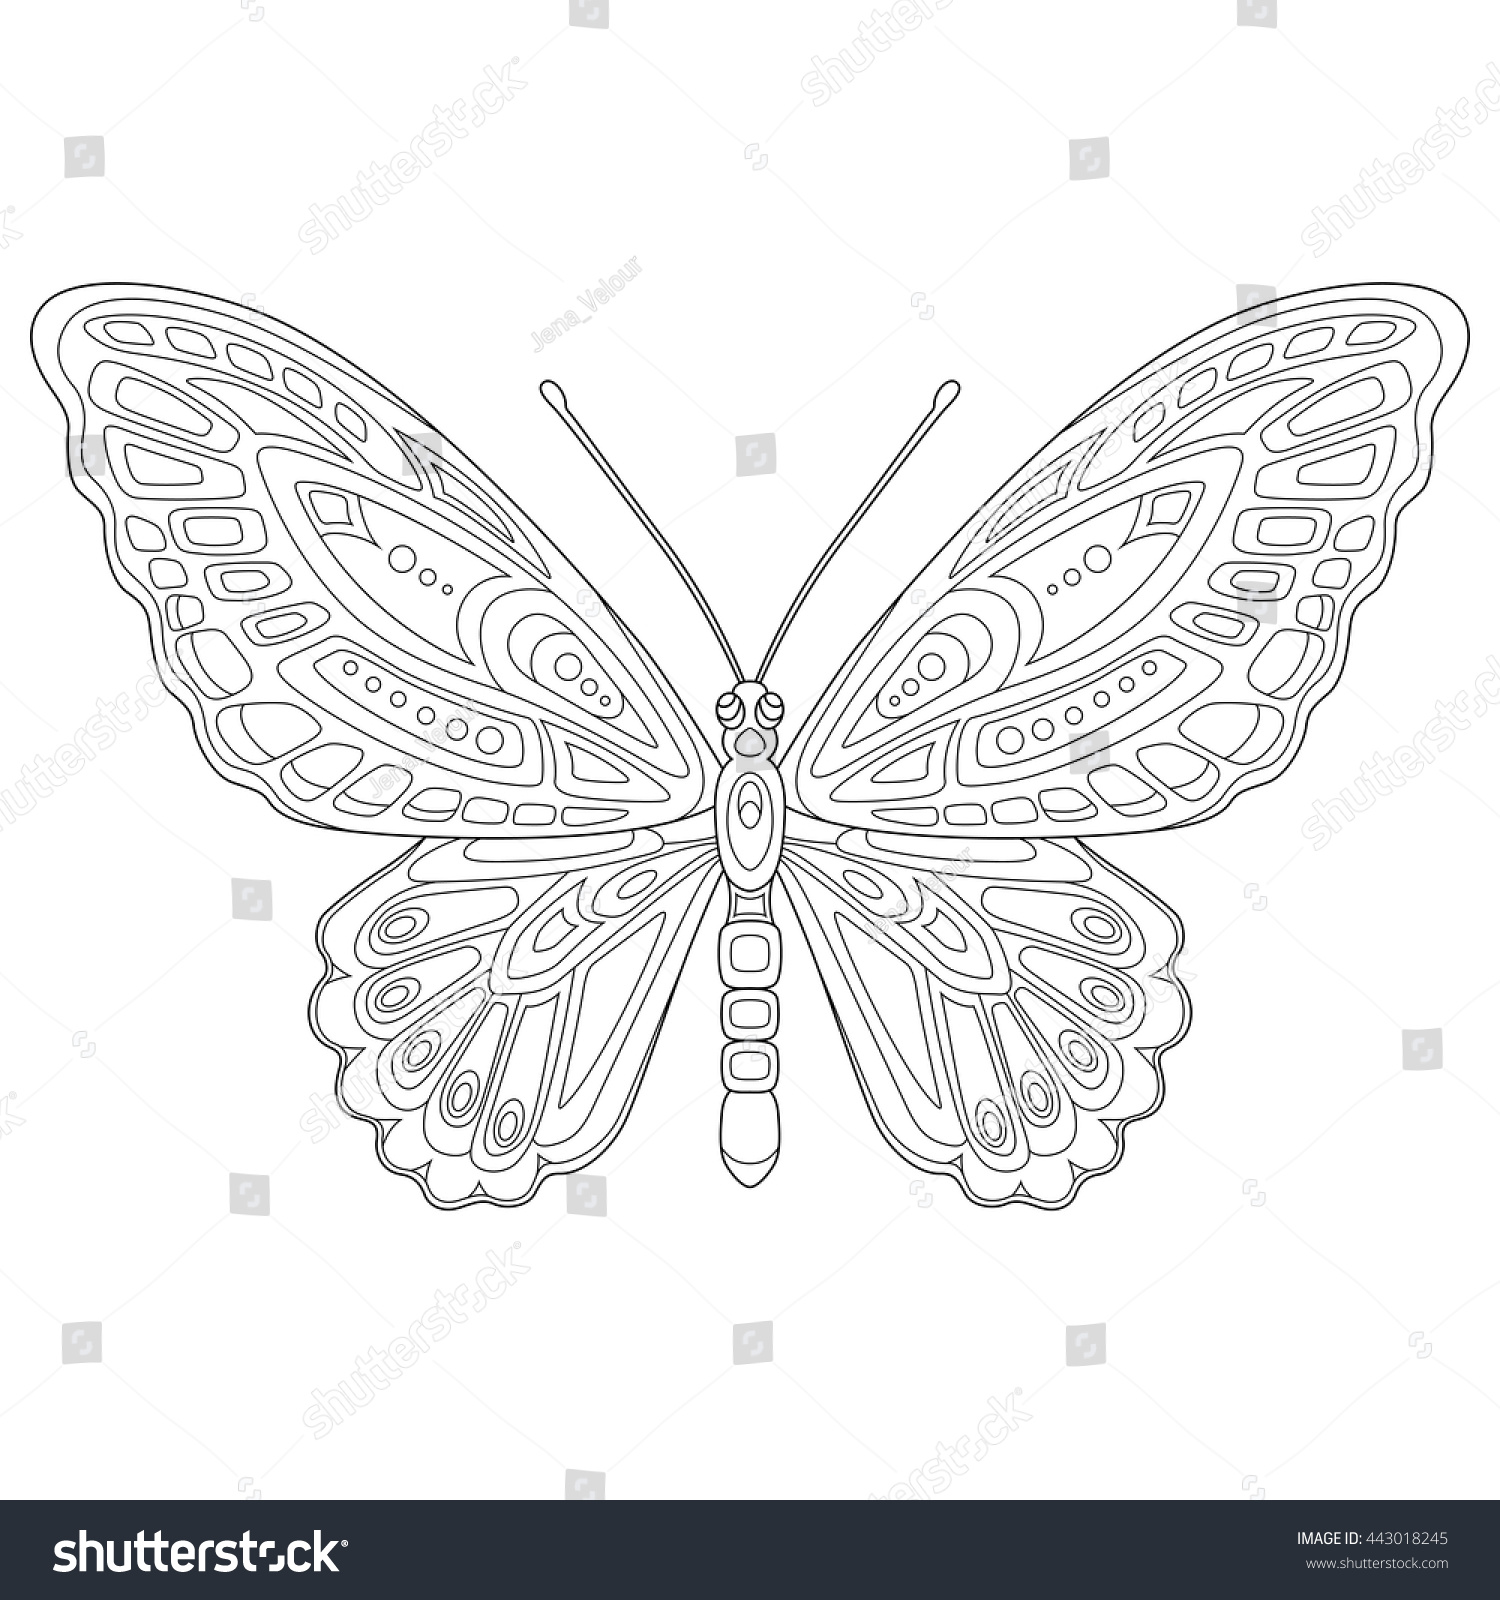 stock vector large exotic butterfly page of coloring book for adults and children art therapy outline drawing